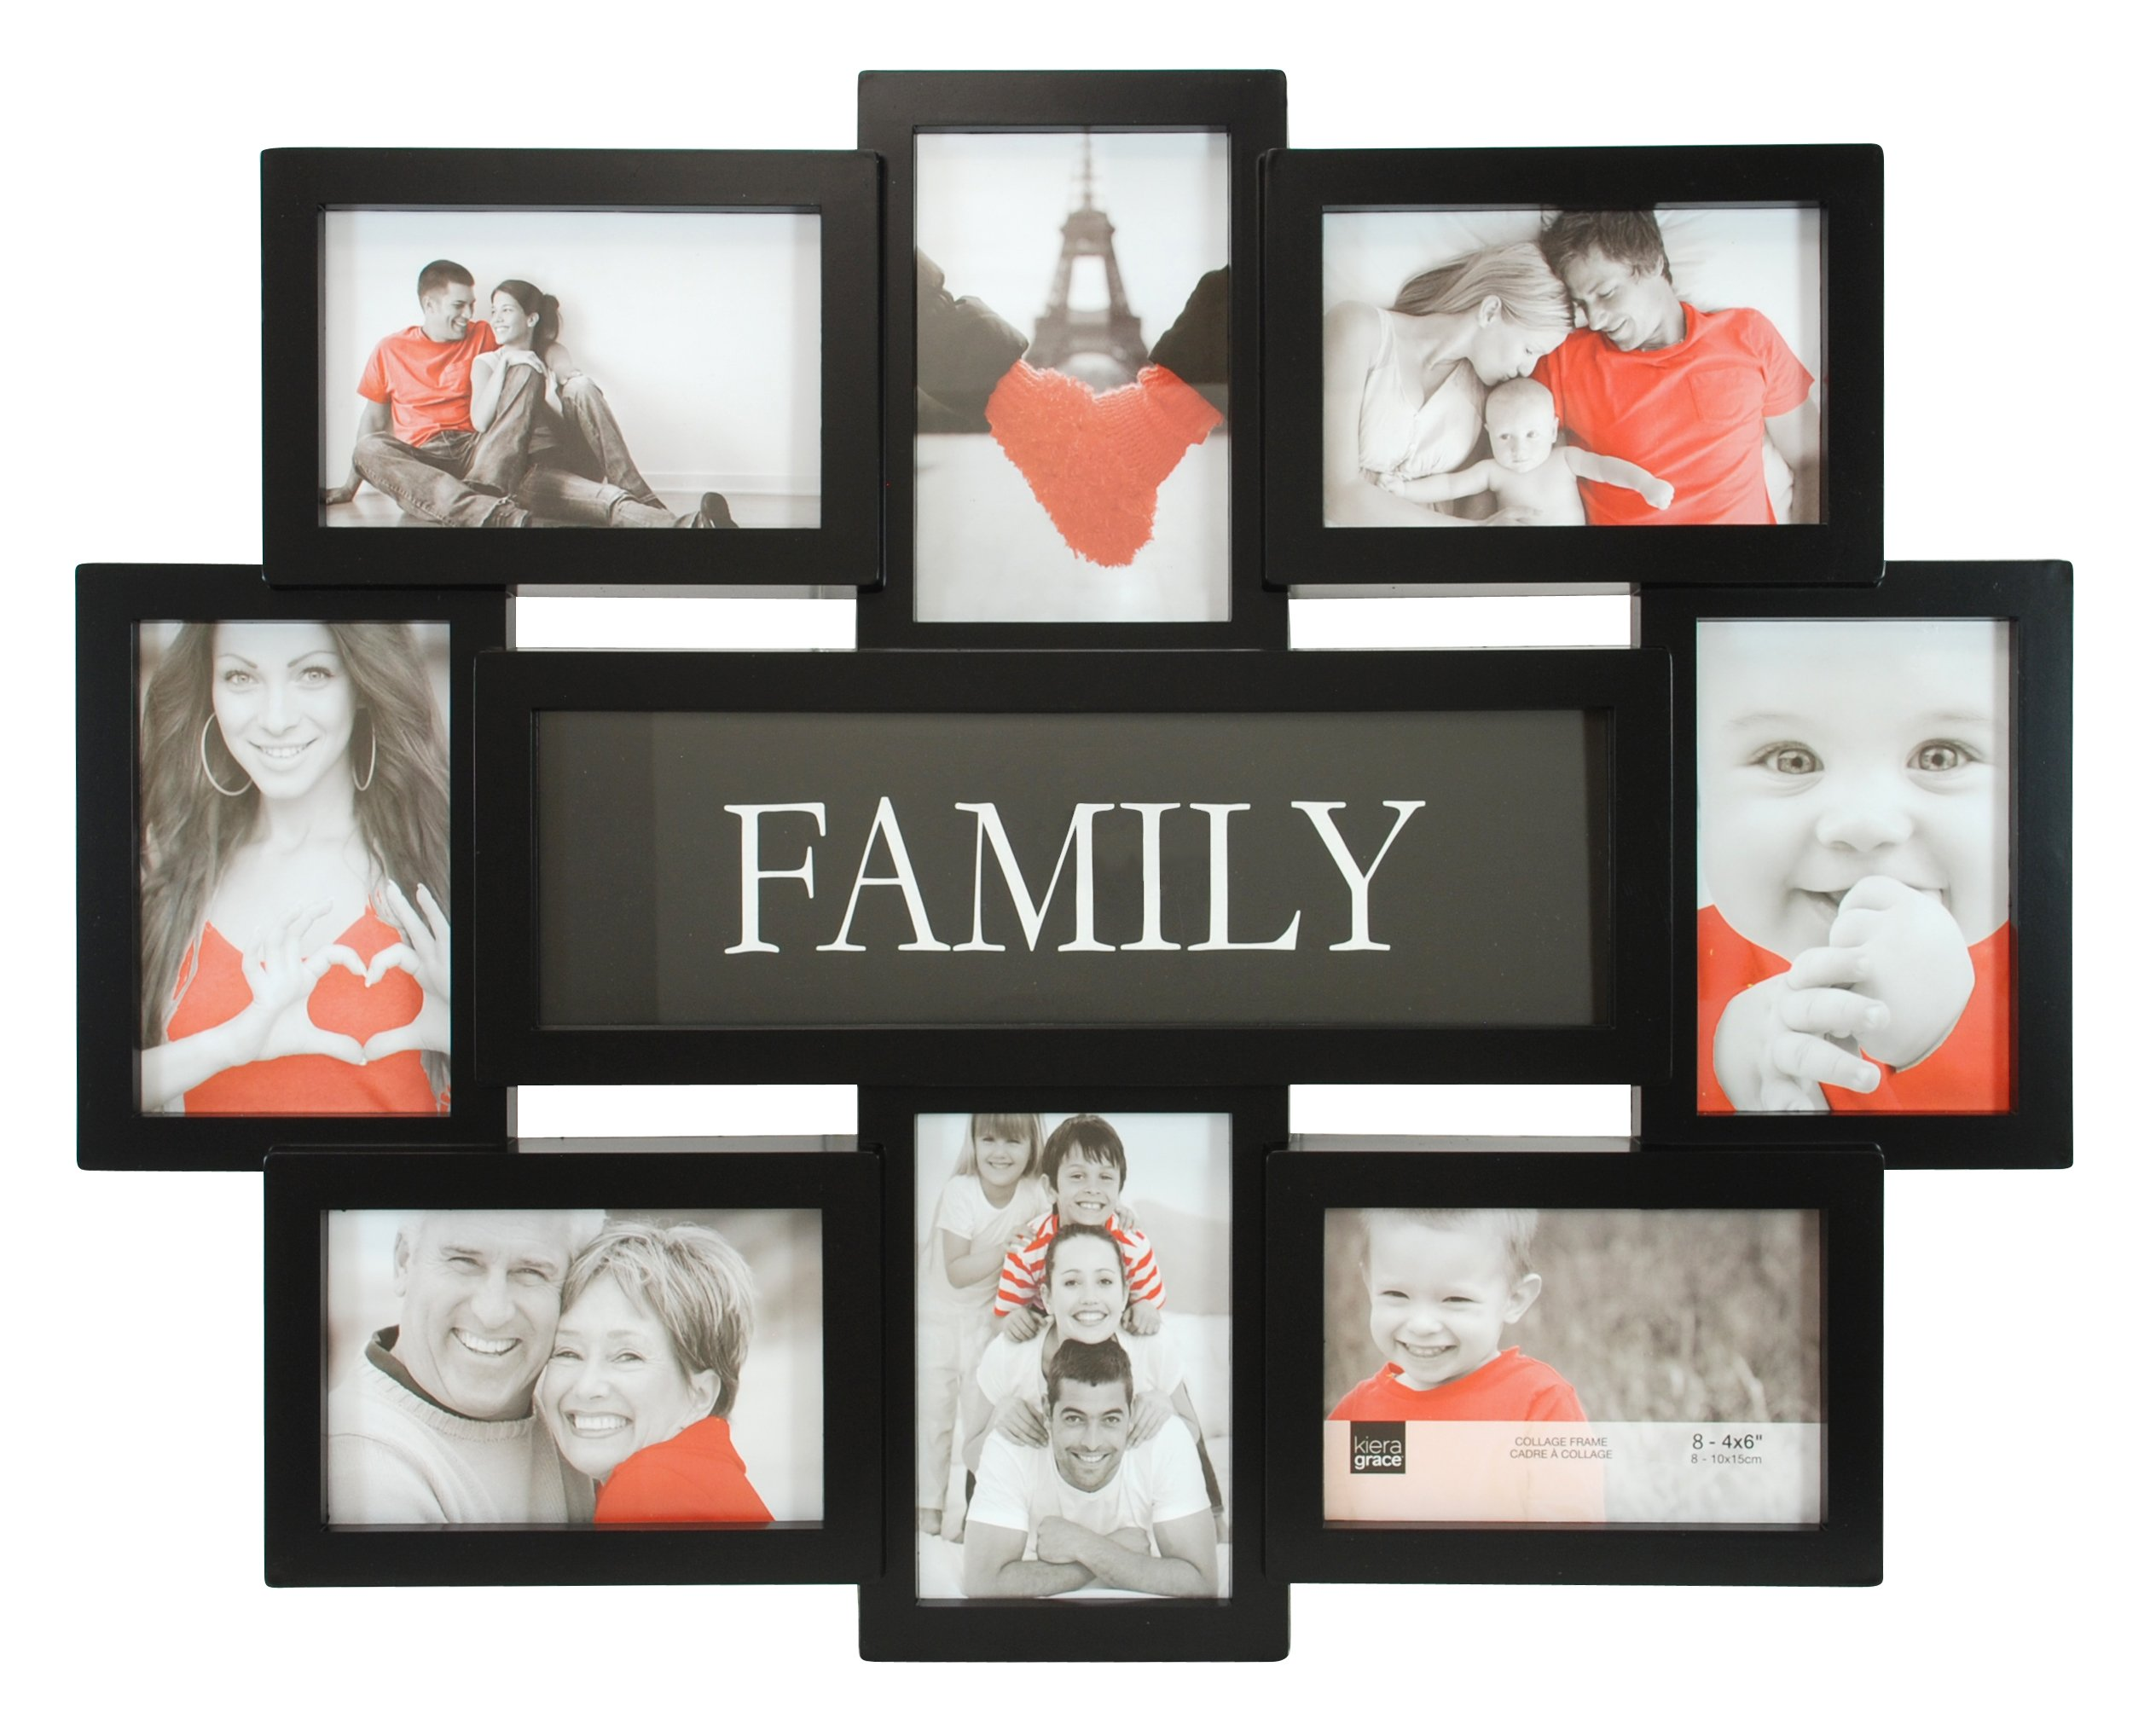 kieragrace Family Collage Frame, 17.5 by 22 Inch Holds 8-4 by 6 Inch Photos, Black by kieragrace